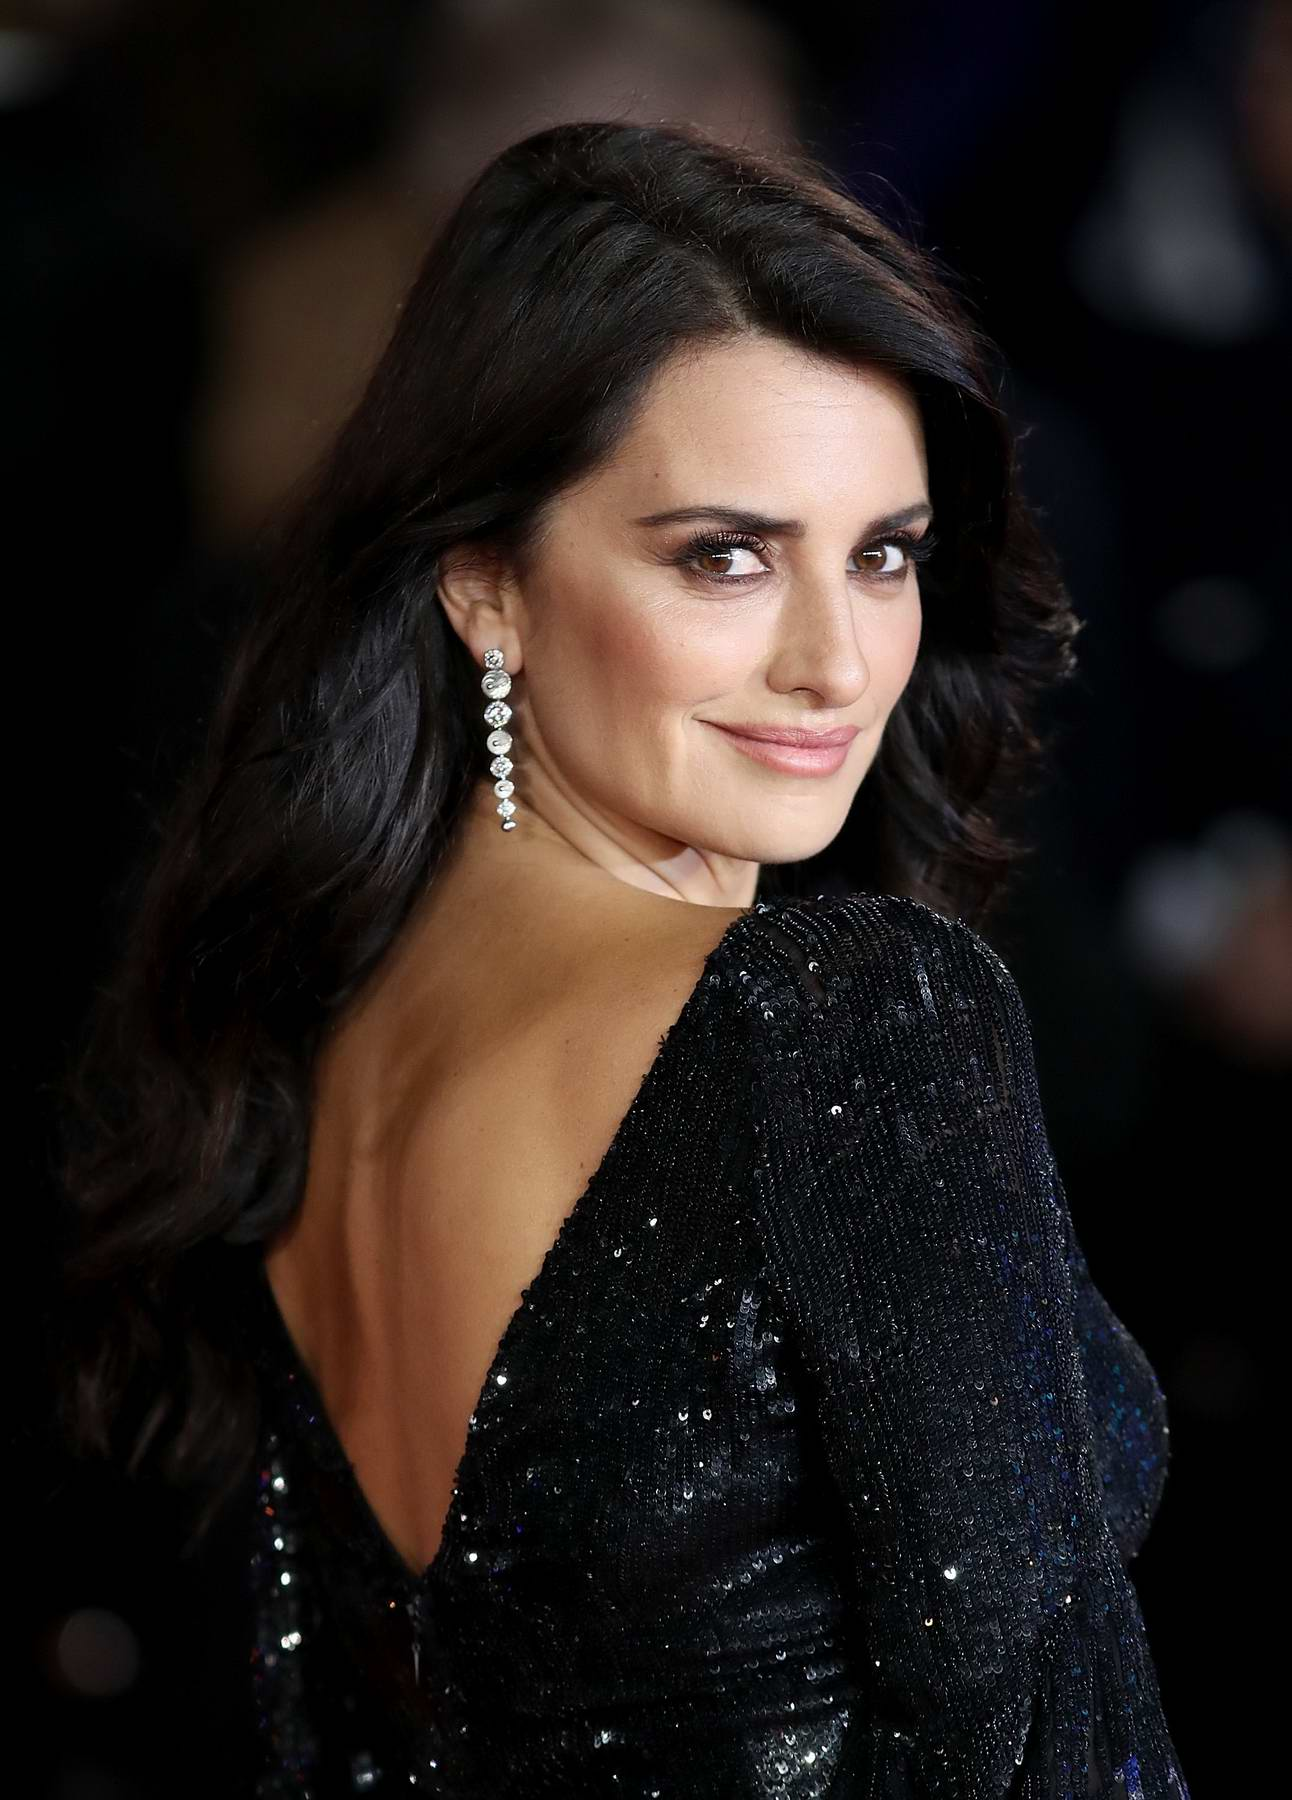 Penelope Cruz attends the premiere of 'Murder on the Orient Express' in London